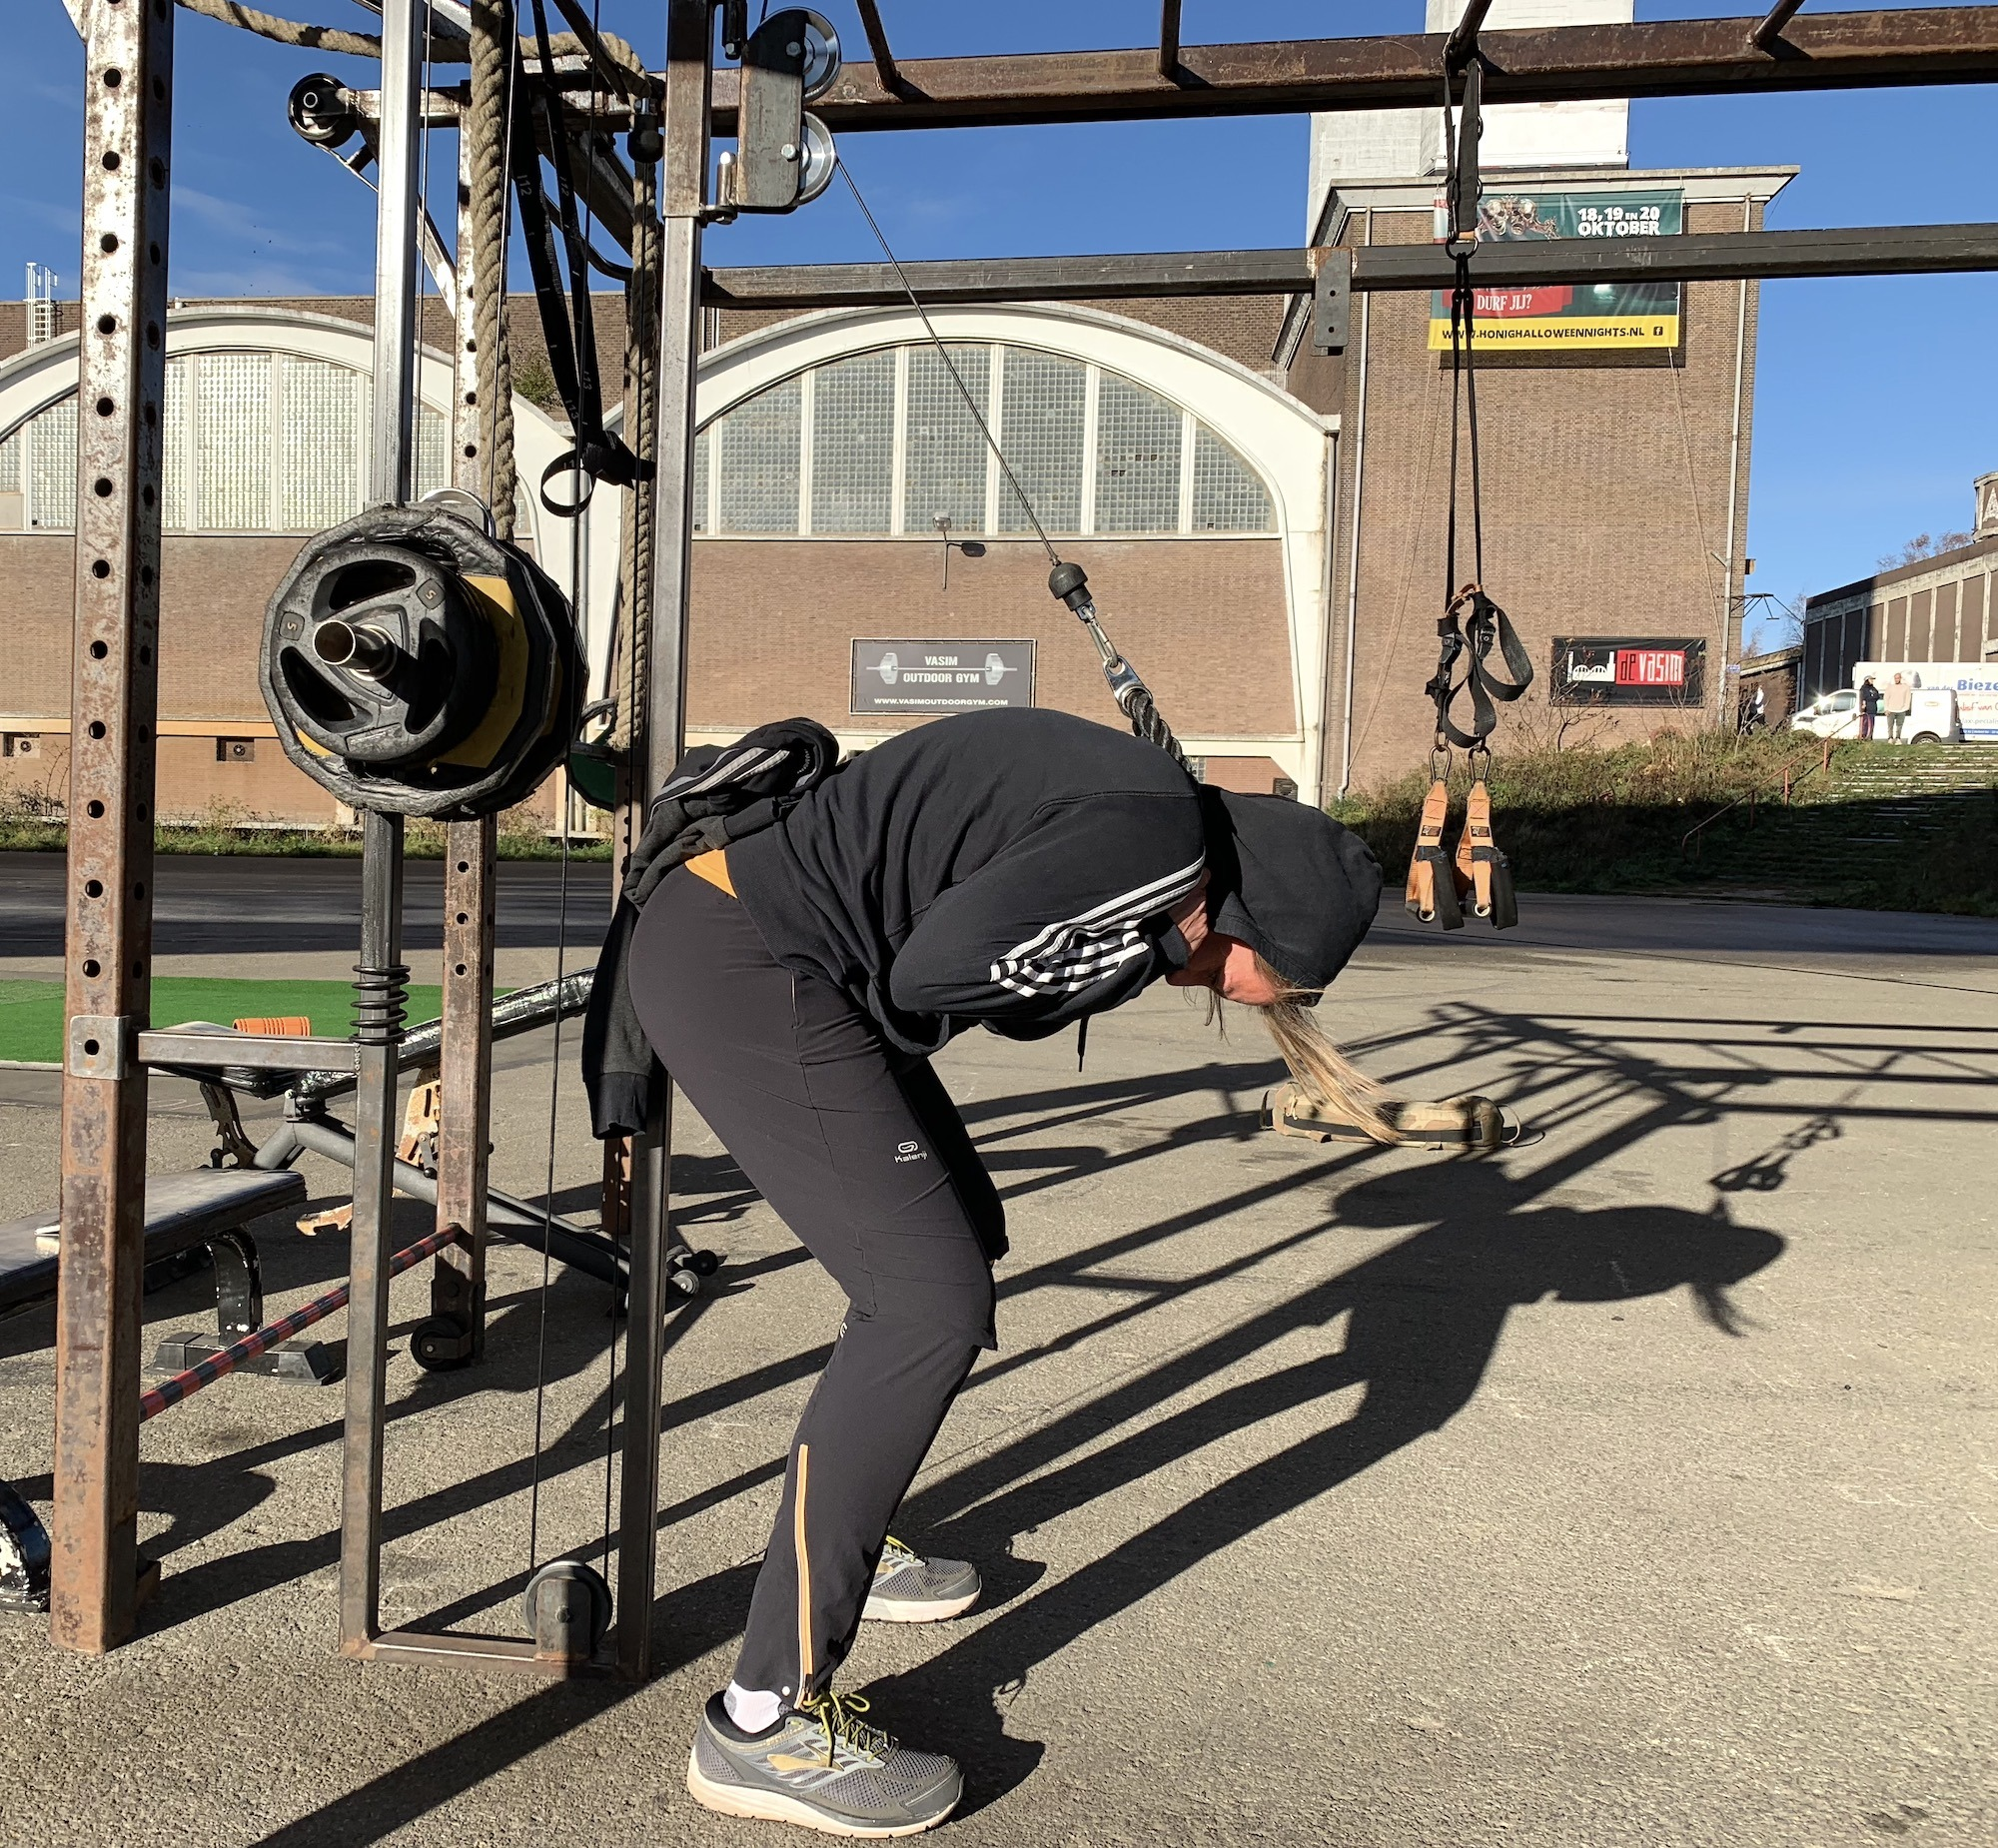 NYMA OUTDOOR GYM 27-10-2018